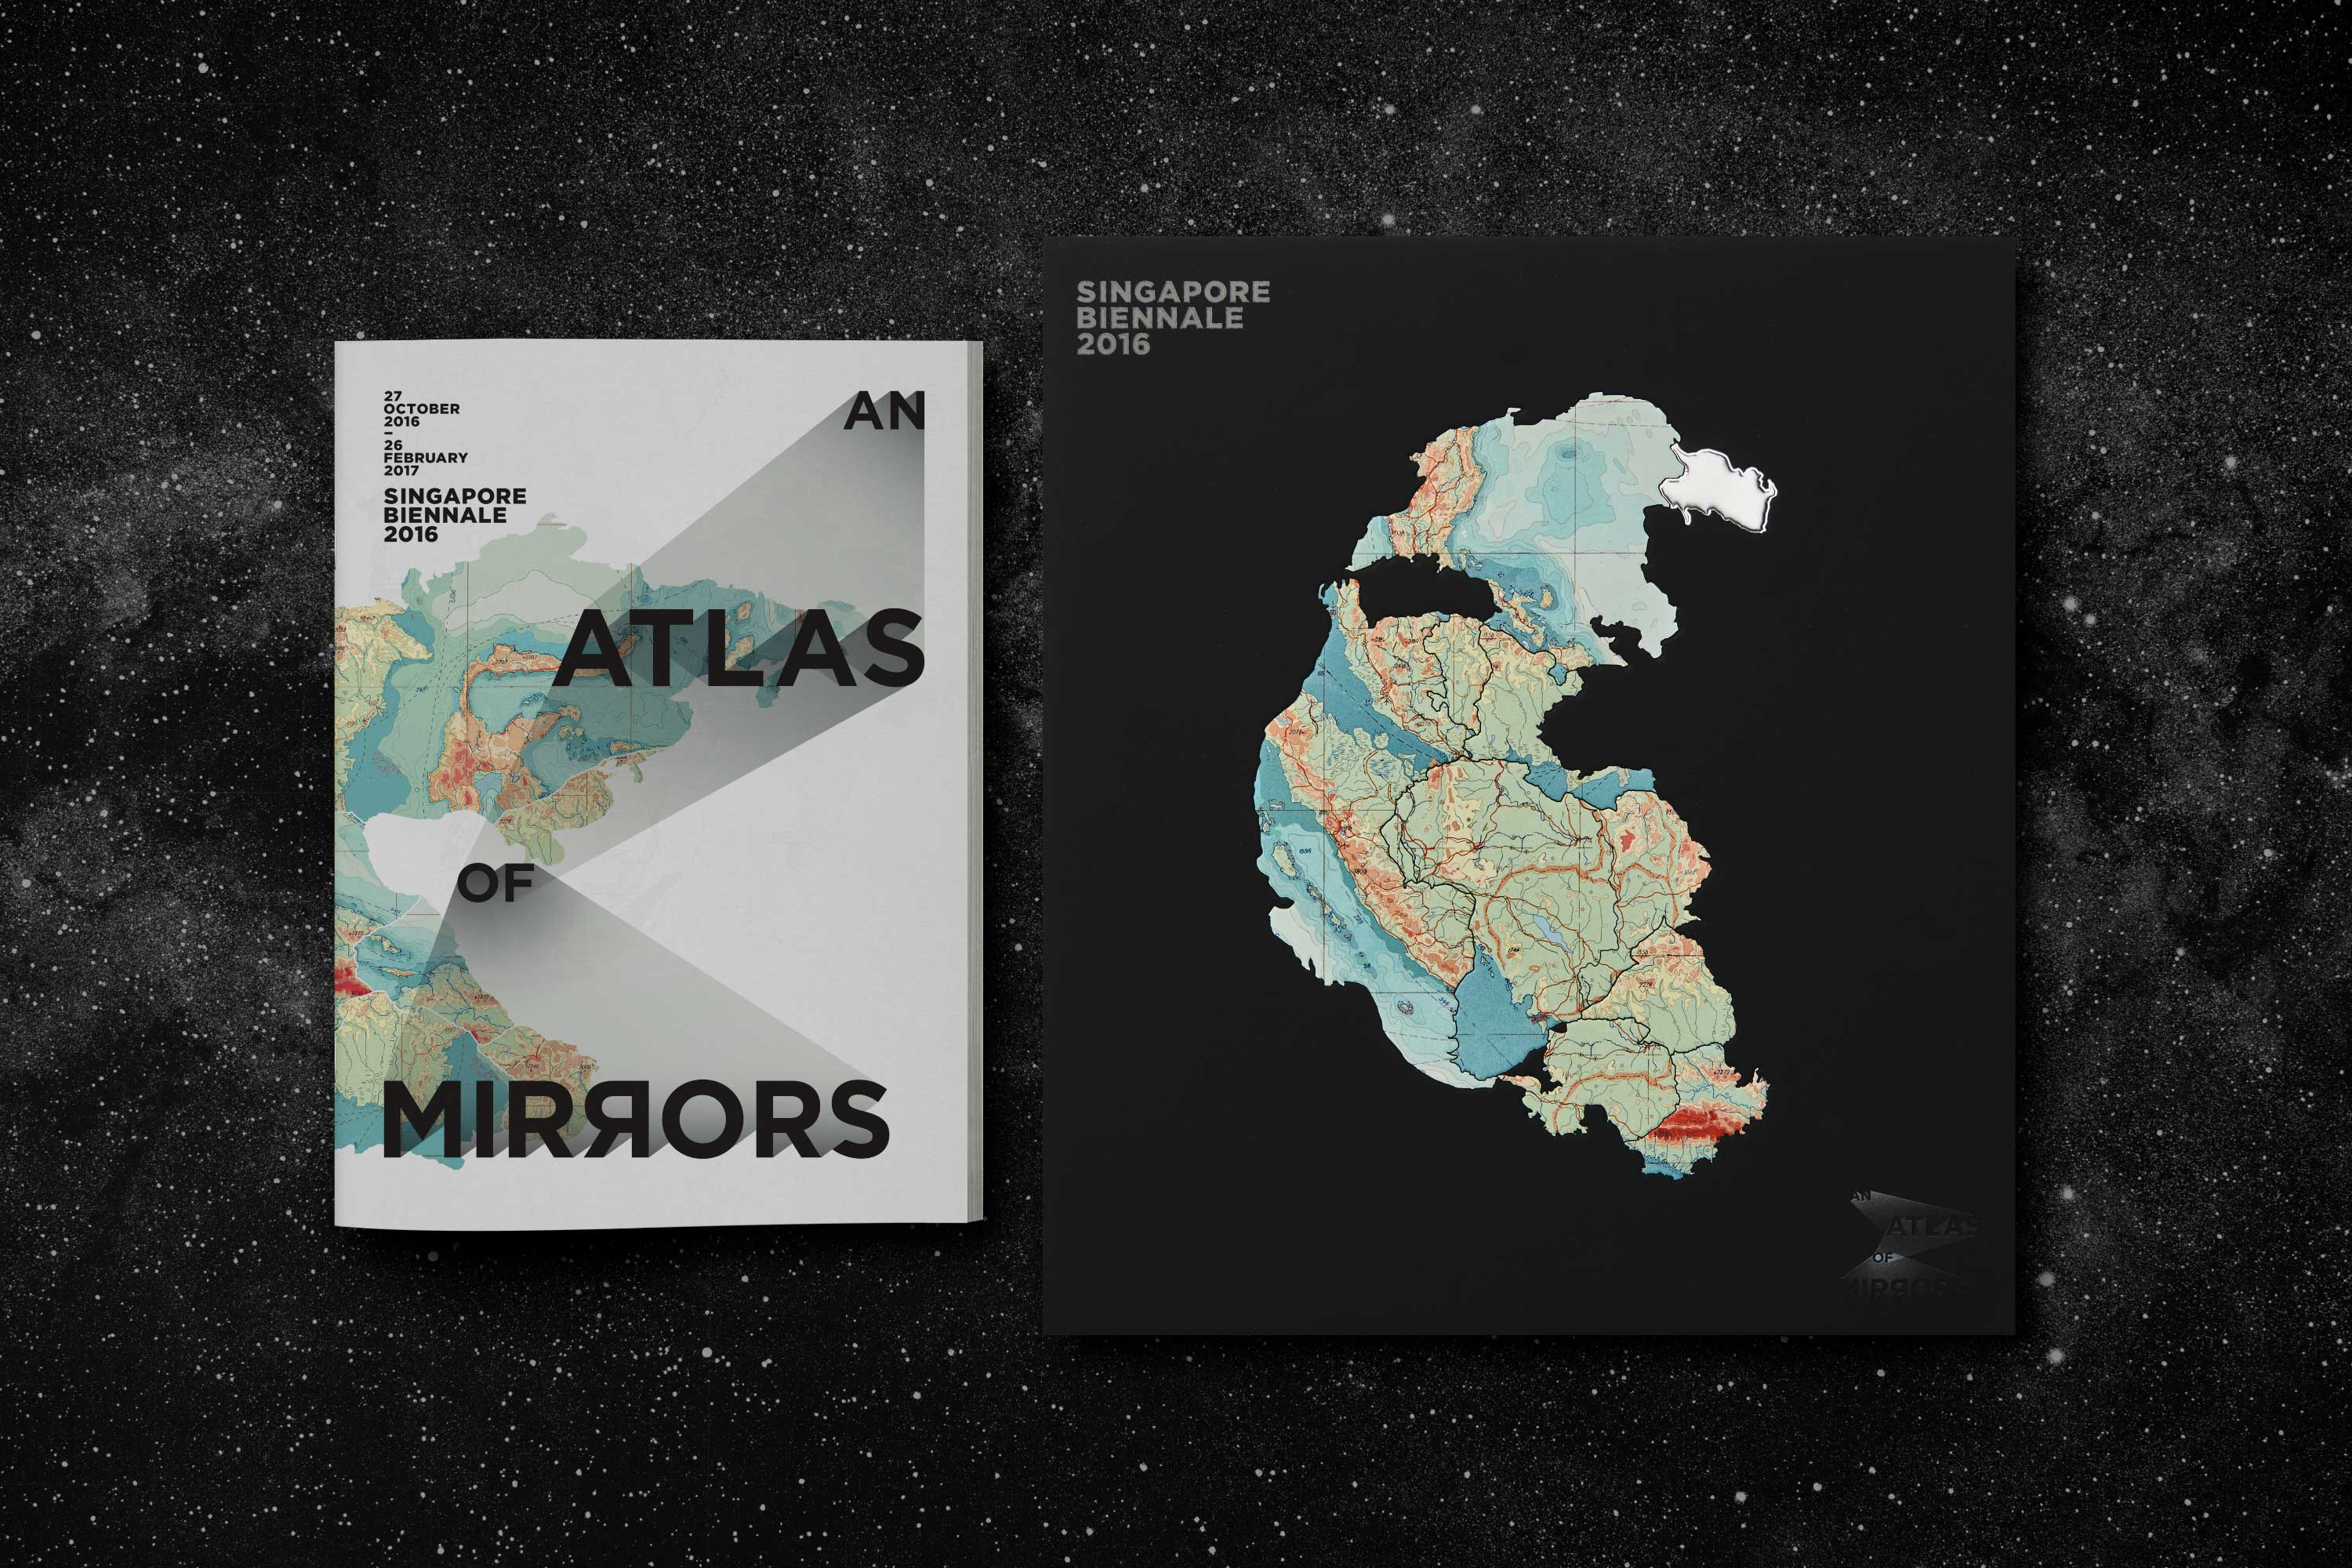 An Atlas of Mirrors – Short guide and art catalogue for Singapore Biennale 2016